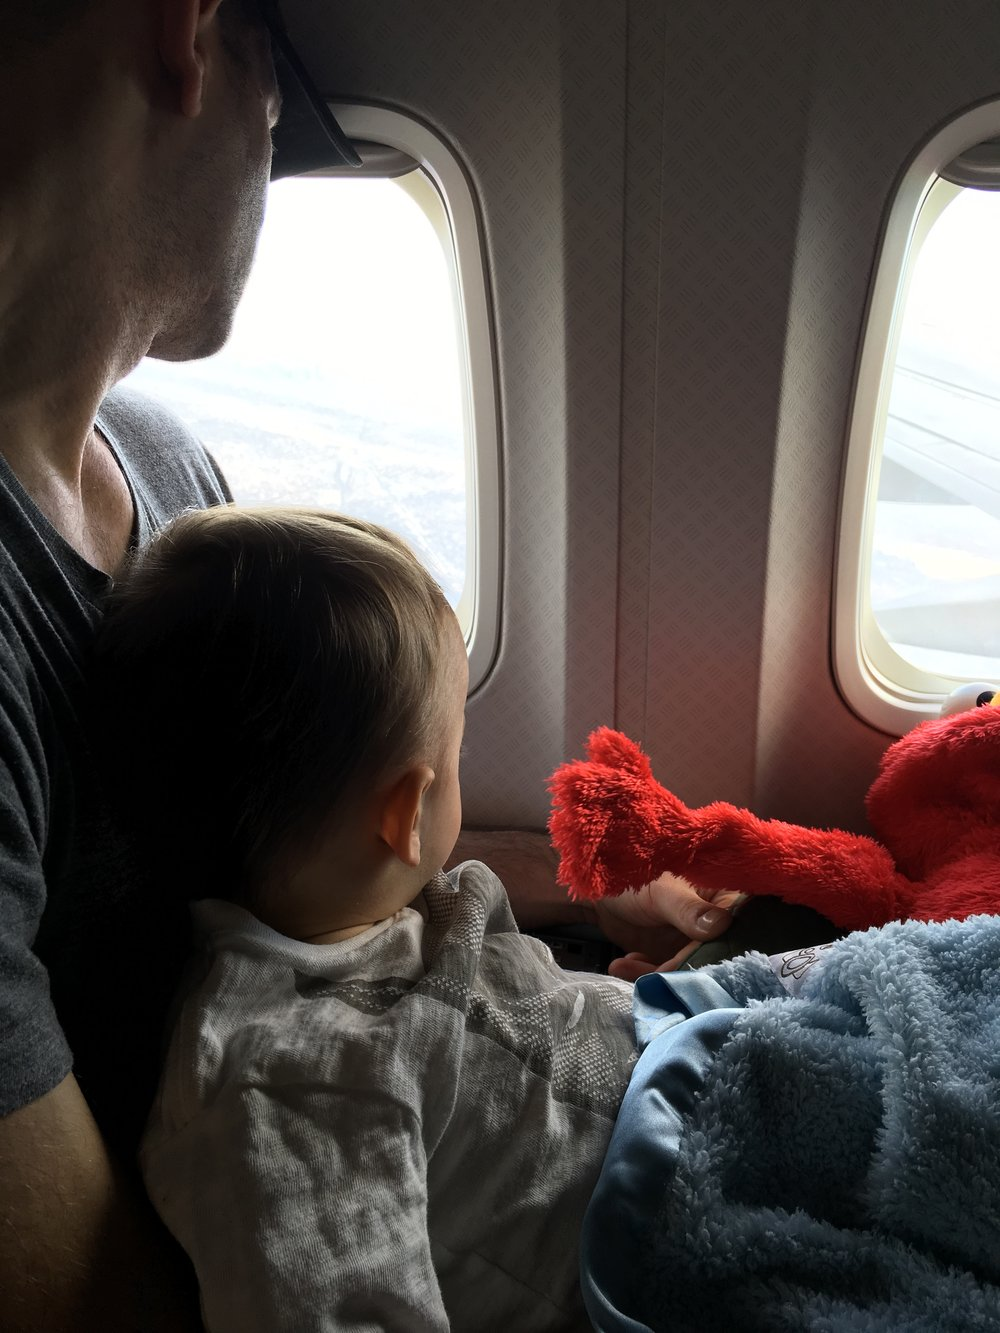 Up in the air with Elmo.